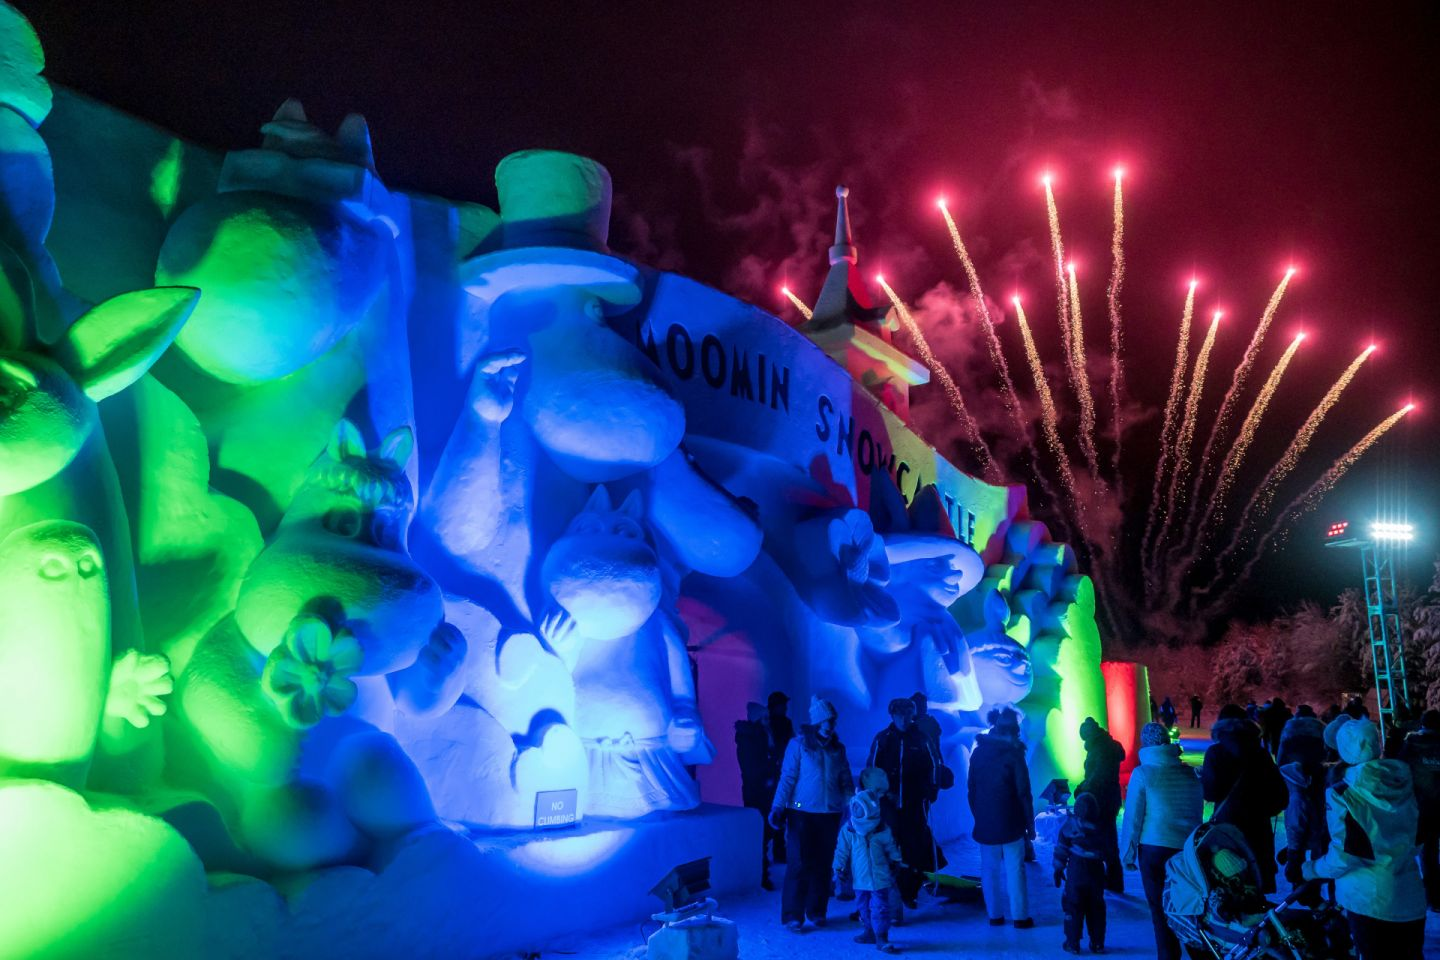 Fireworks over Moomin Snow Castle in Rovaniemi, Finland